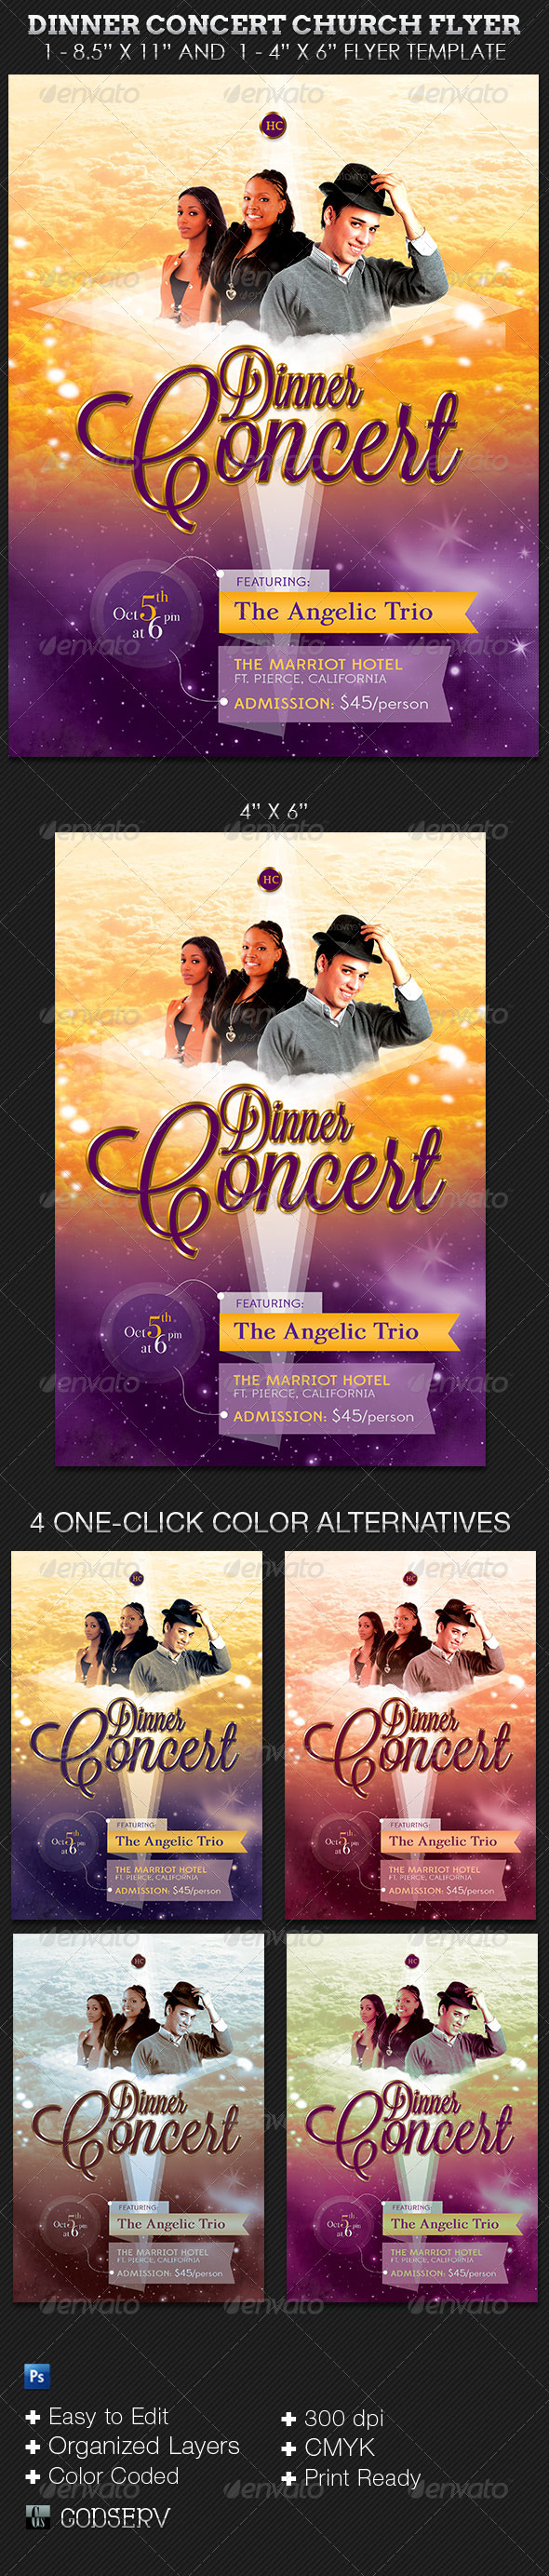 GraphicRiver Dinner Concert Church Flyer Template 5857818